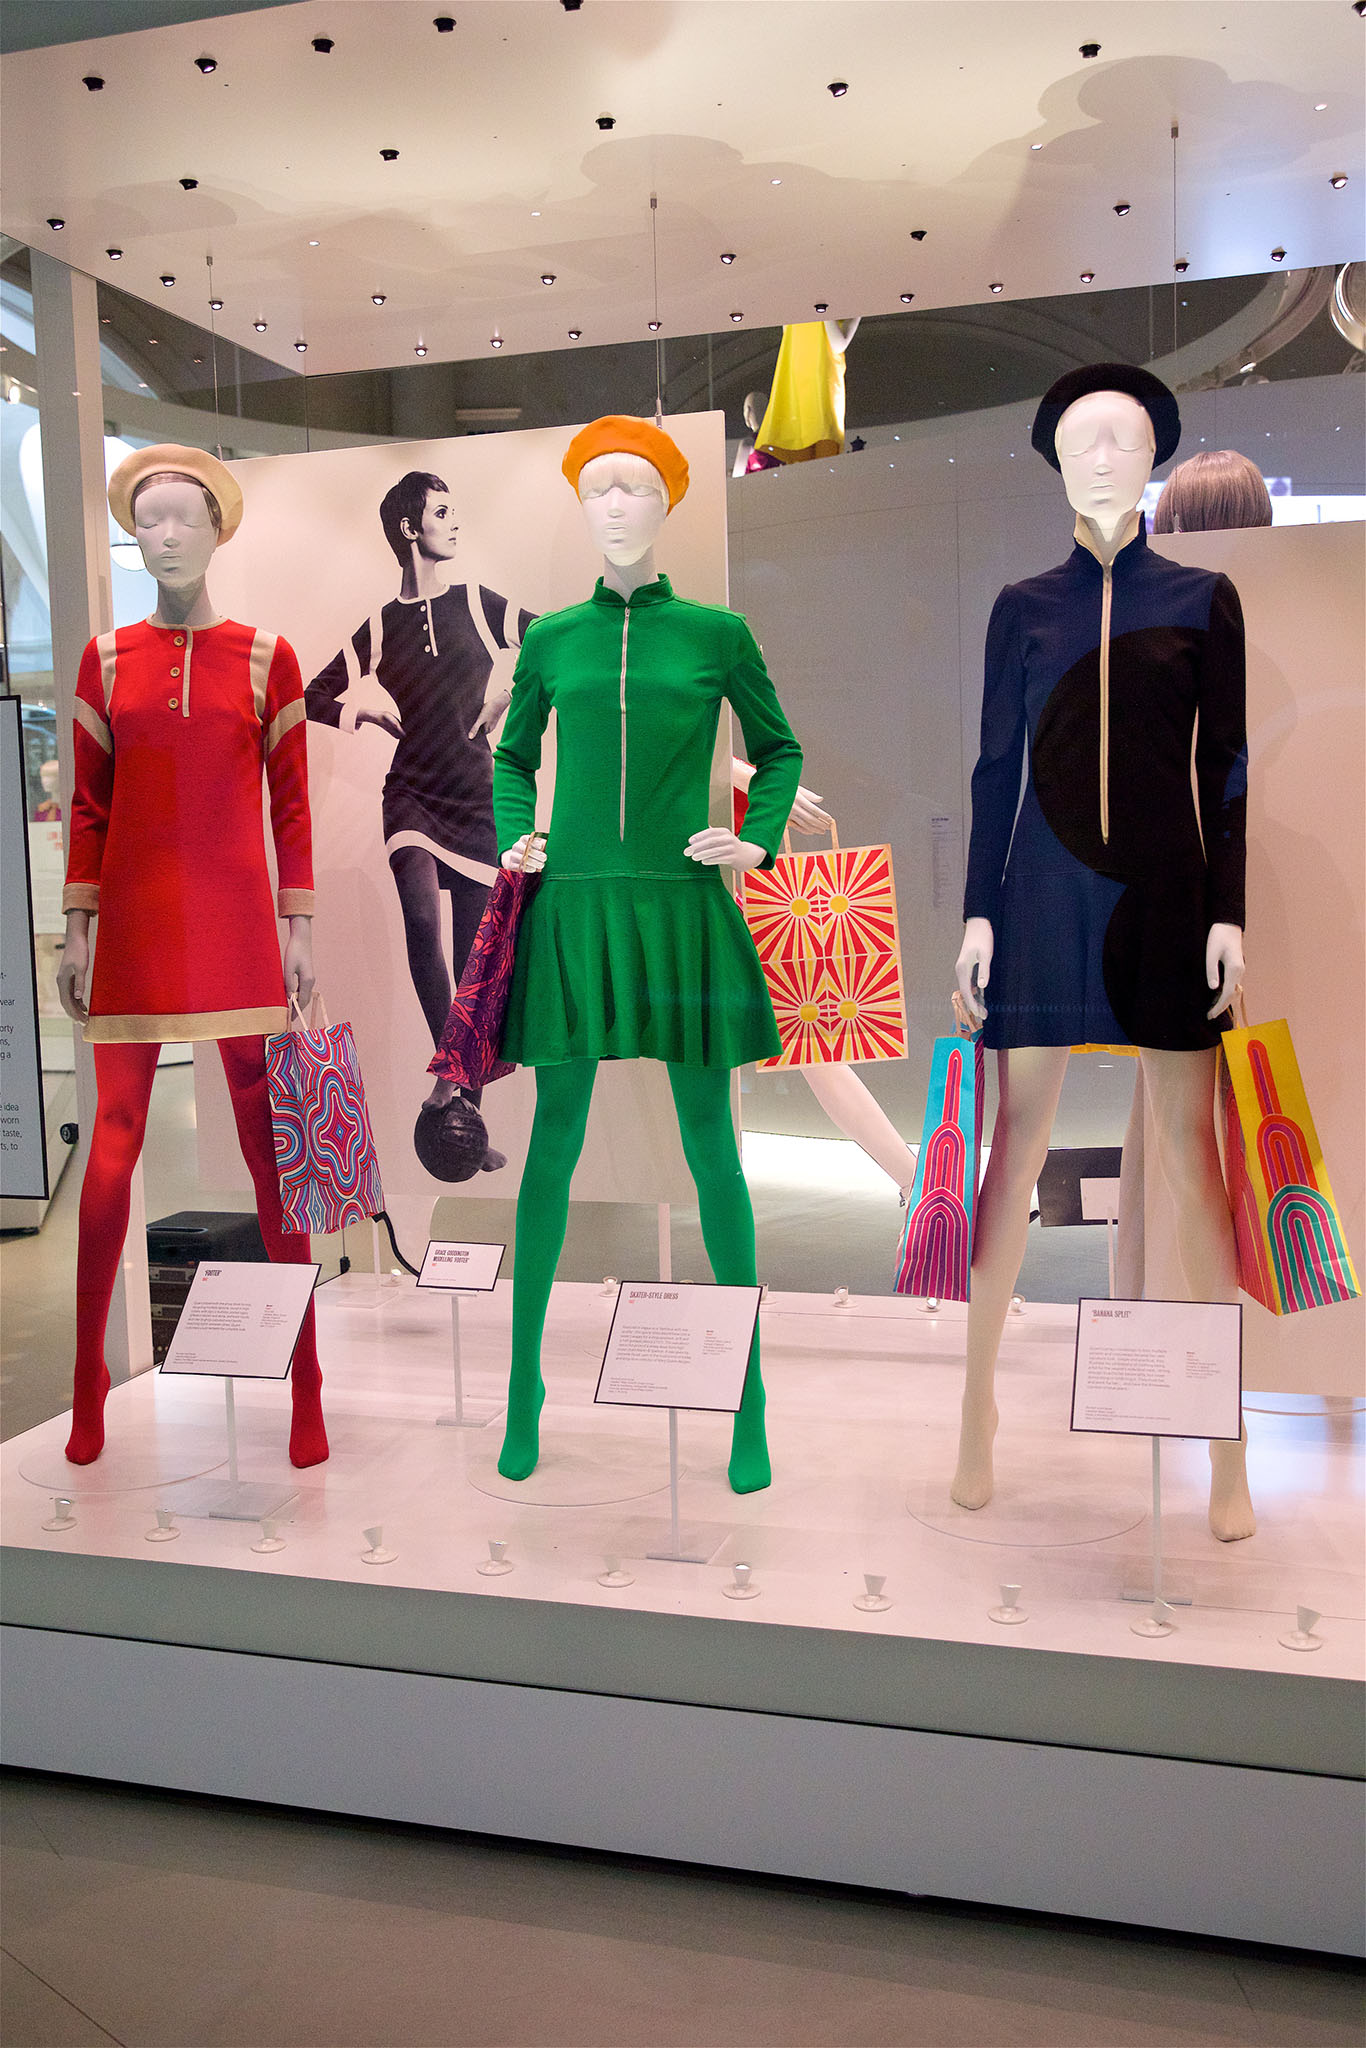 The Mary Quant exhibit at the Victoria and Albert Museum.